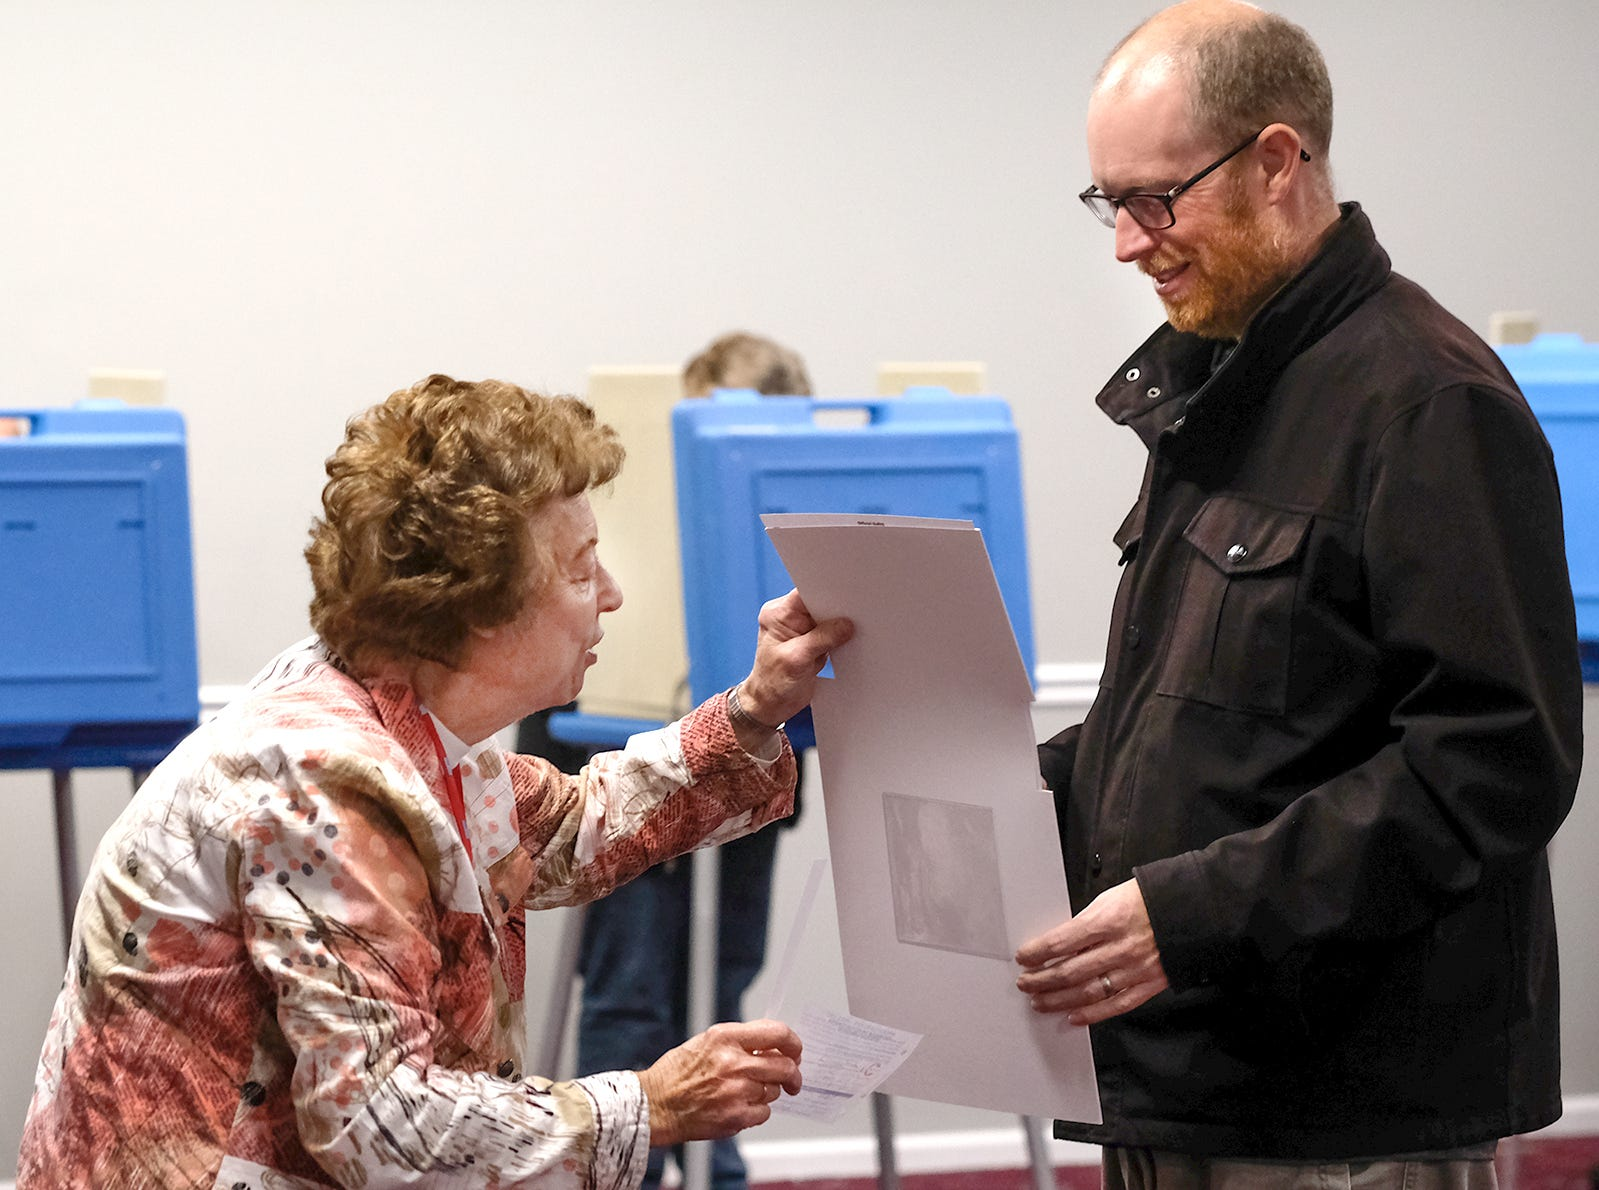 A polling station worker helps a voter as he gets ready to scan his ballot in Precinct 1 at Bingham Township Hall in St. Johns Tuesday, Nov. 6, 2018.